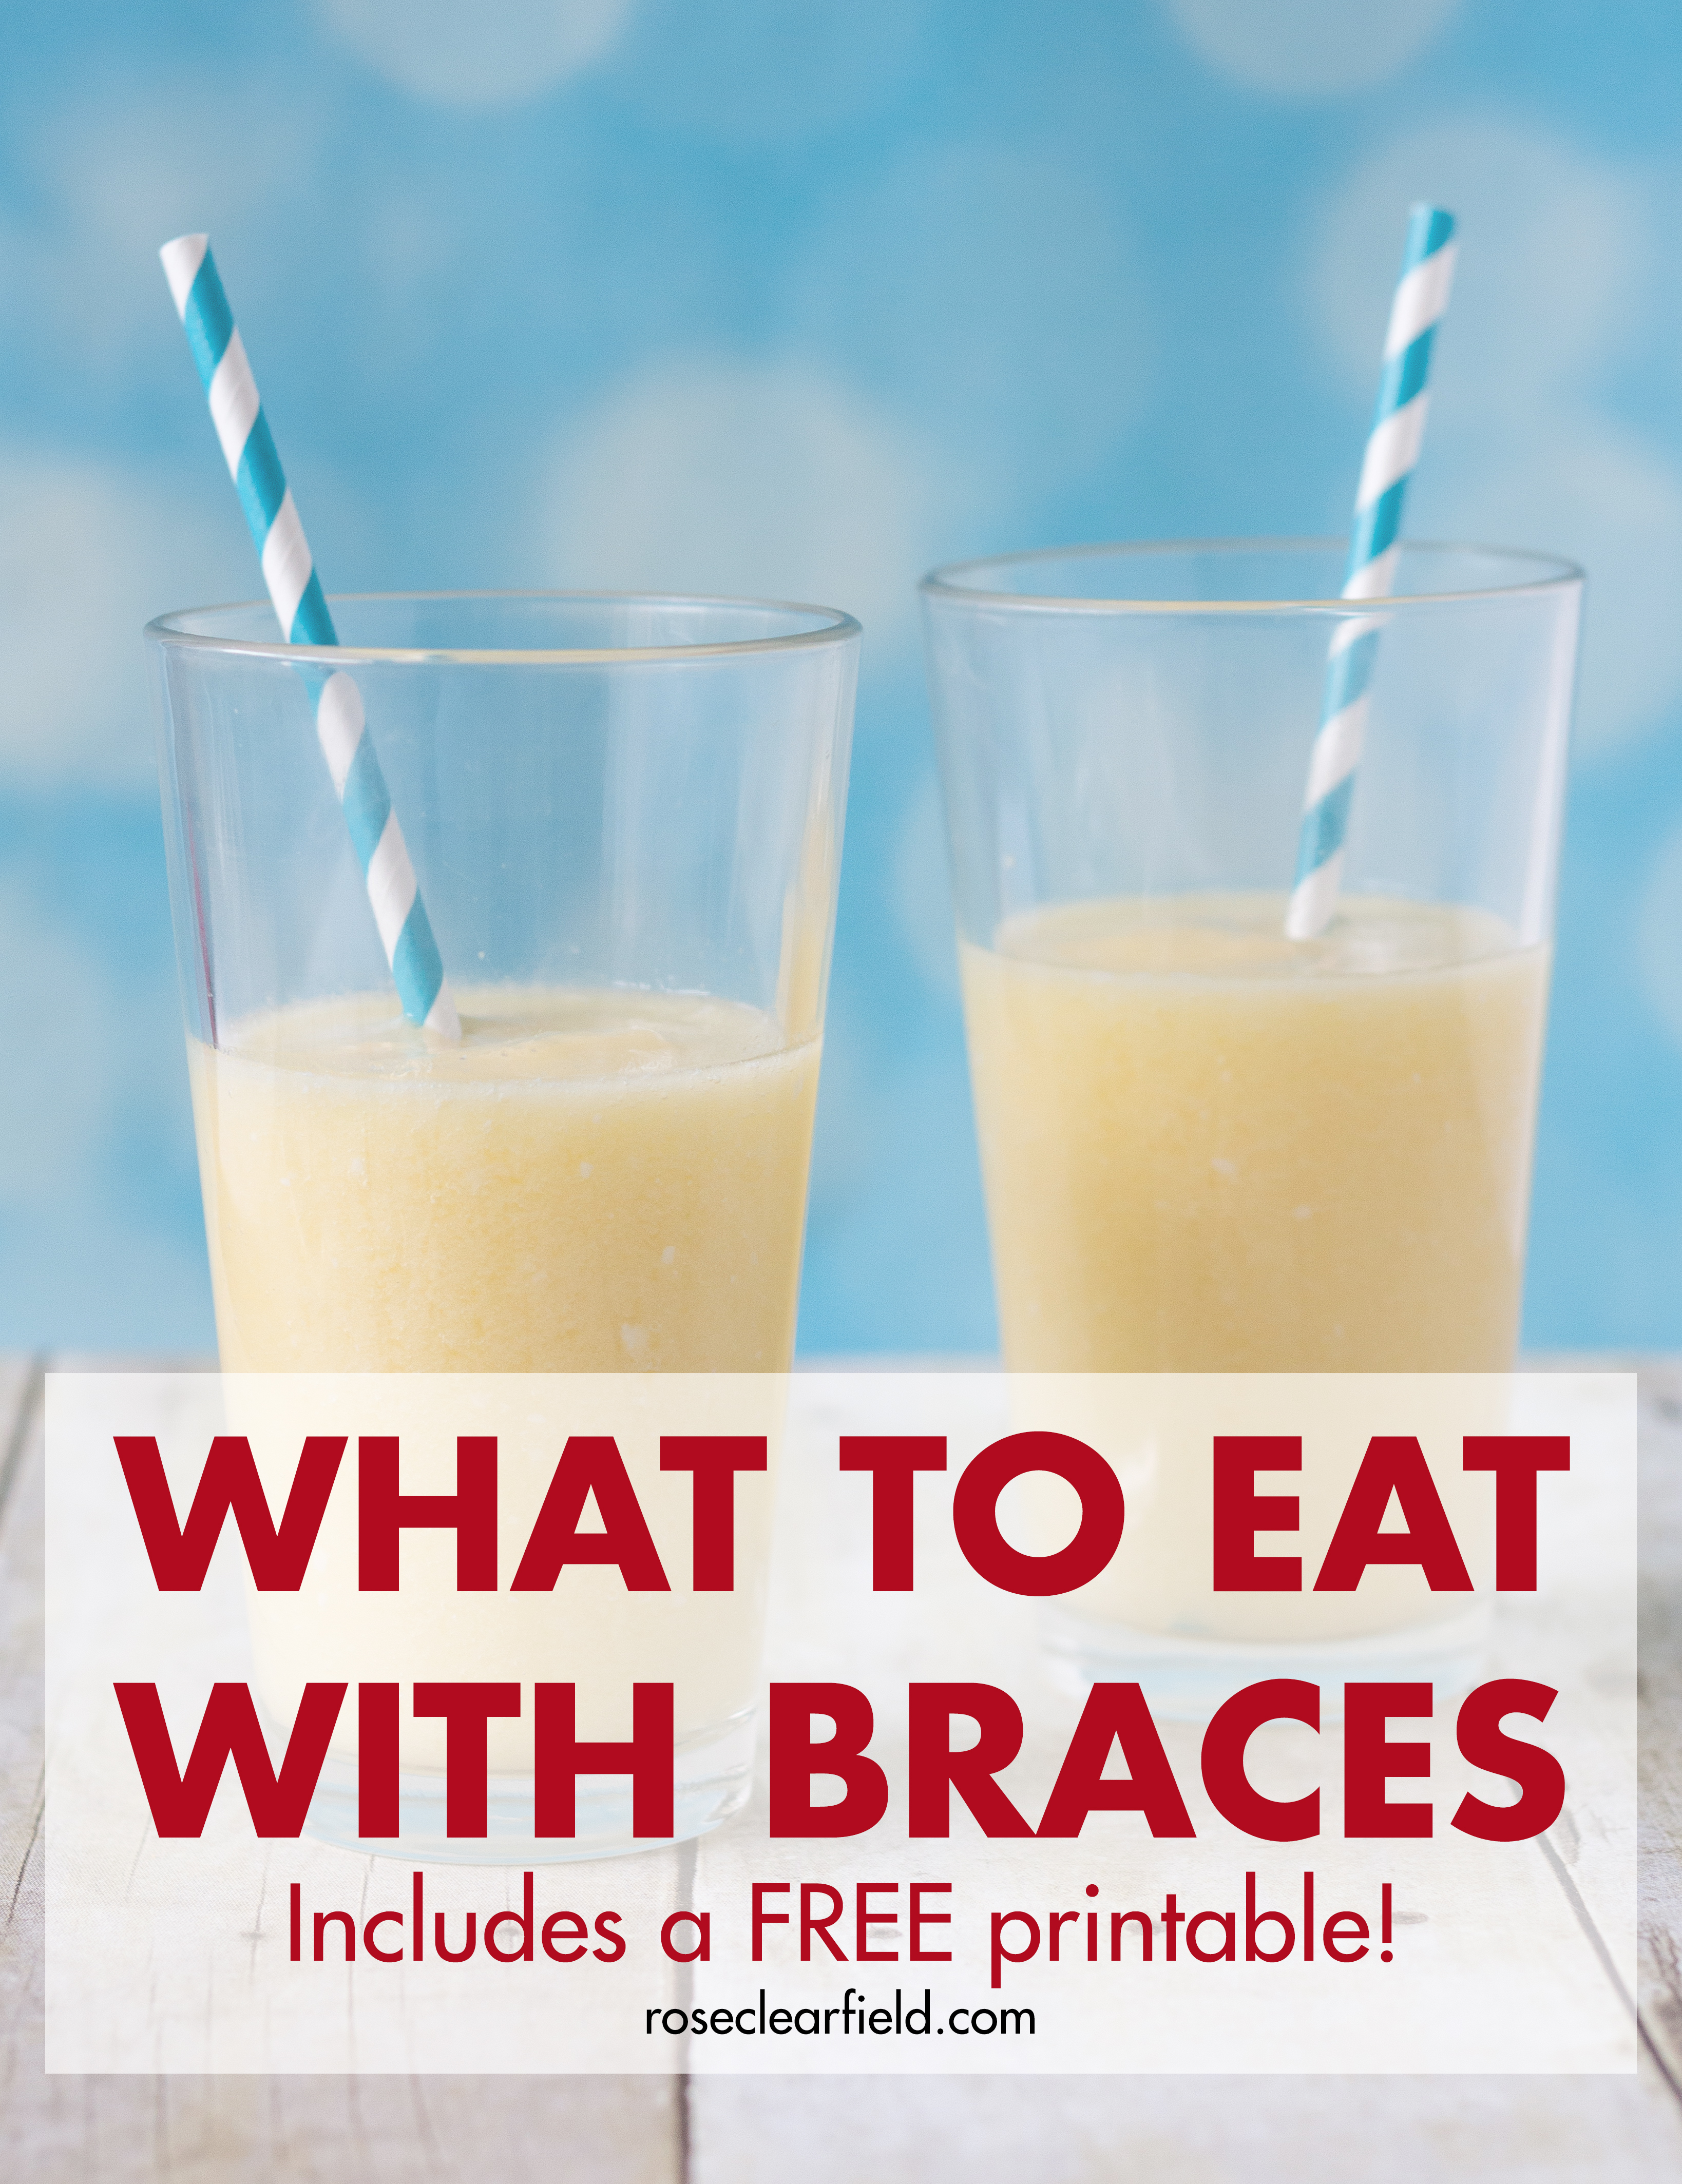 What to Eat with Braces. My best recommendations to keep you eating healthy, interesting food during those early months with braces. Includes a FREE printable! #braces #whattoeatwithbraces #bracesfriendlyfoods | https://www.roseclearfield.com